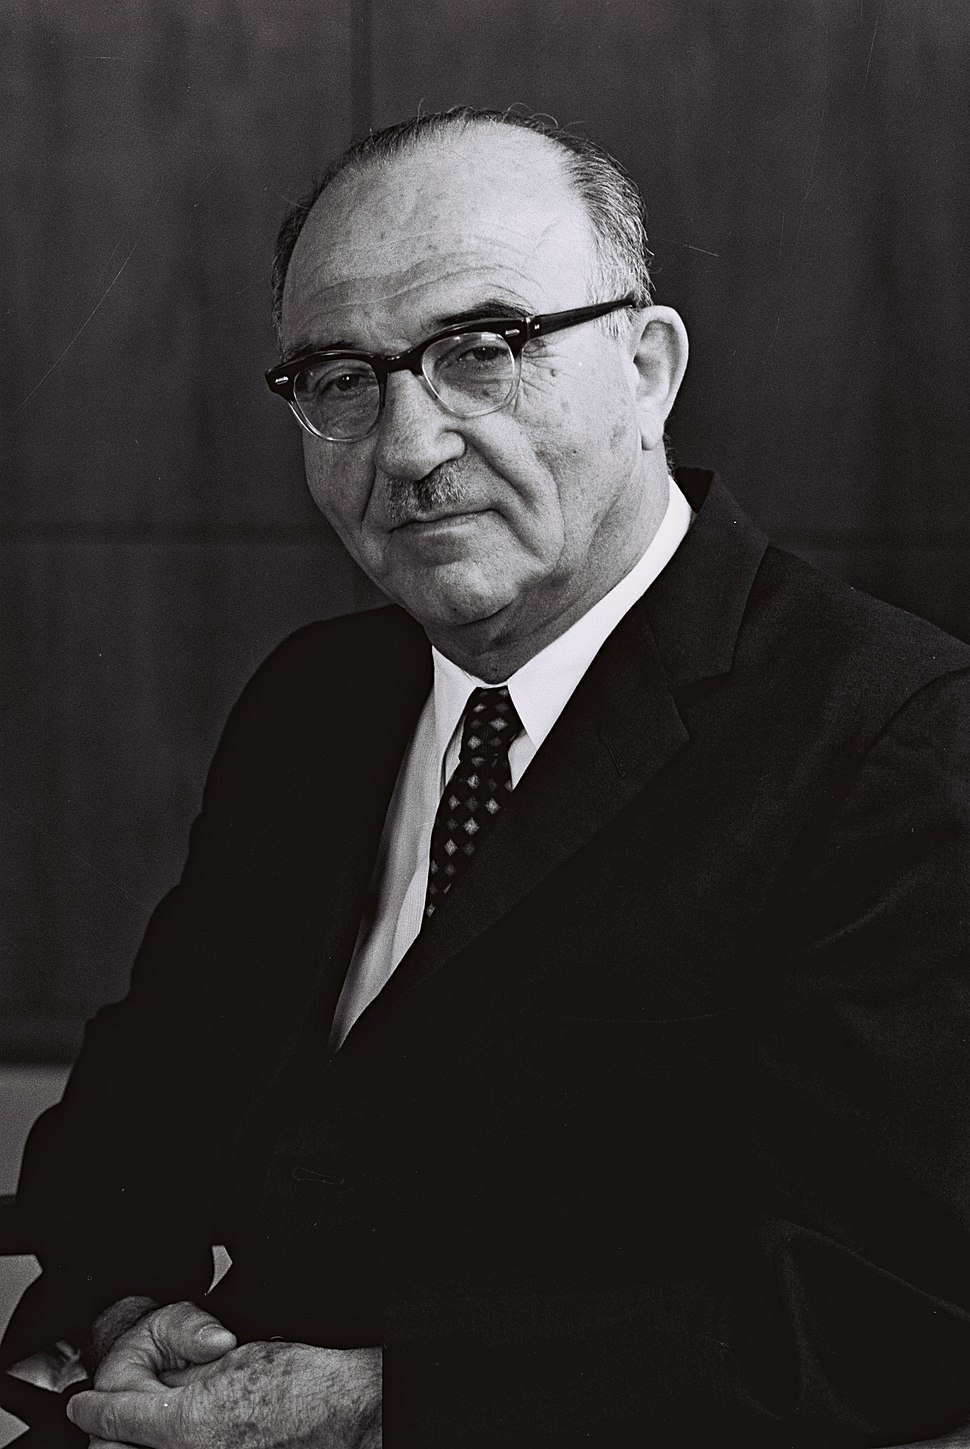 Portrait of prime minister Levy Eshkol. August 1963. D699-070